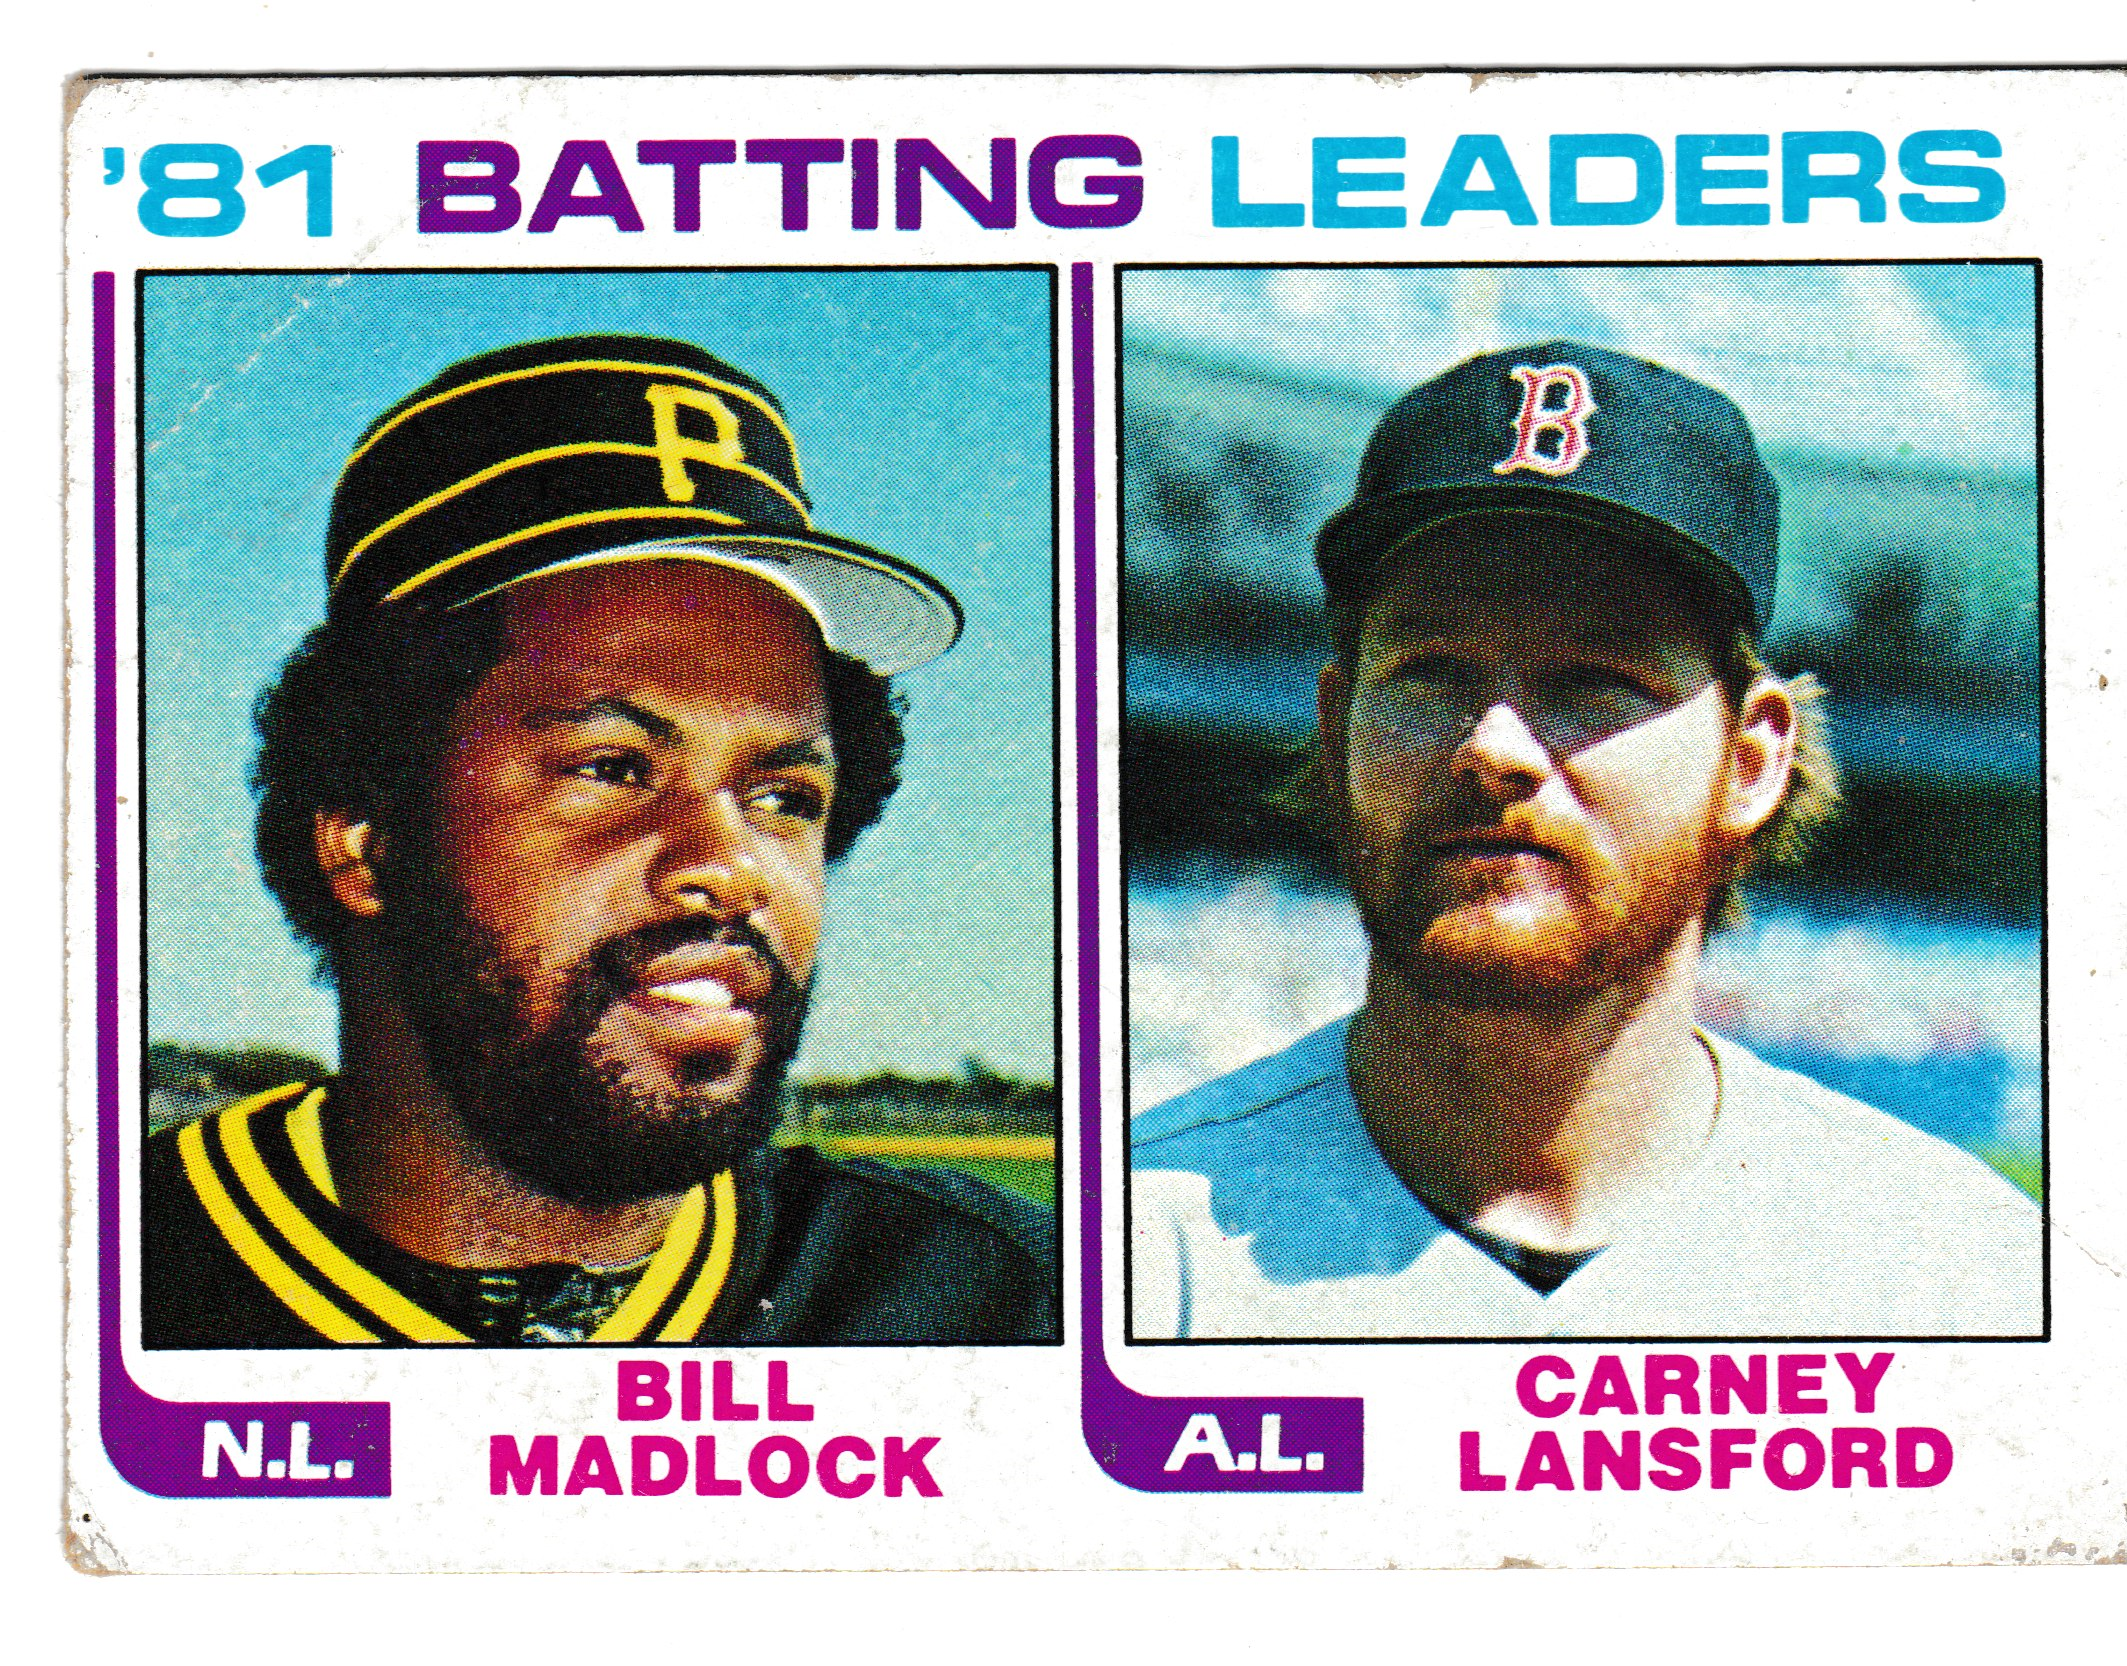 1981 Batting Leaders Bill Madlock Of The Pirates Carney